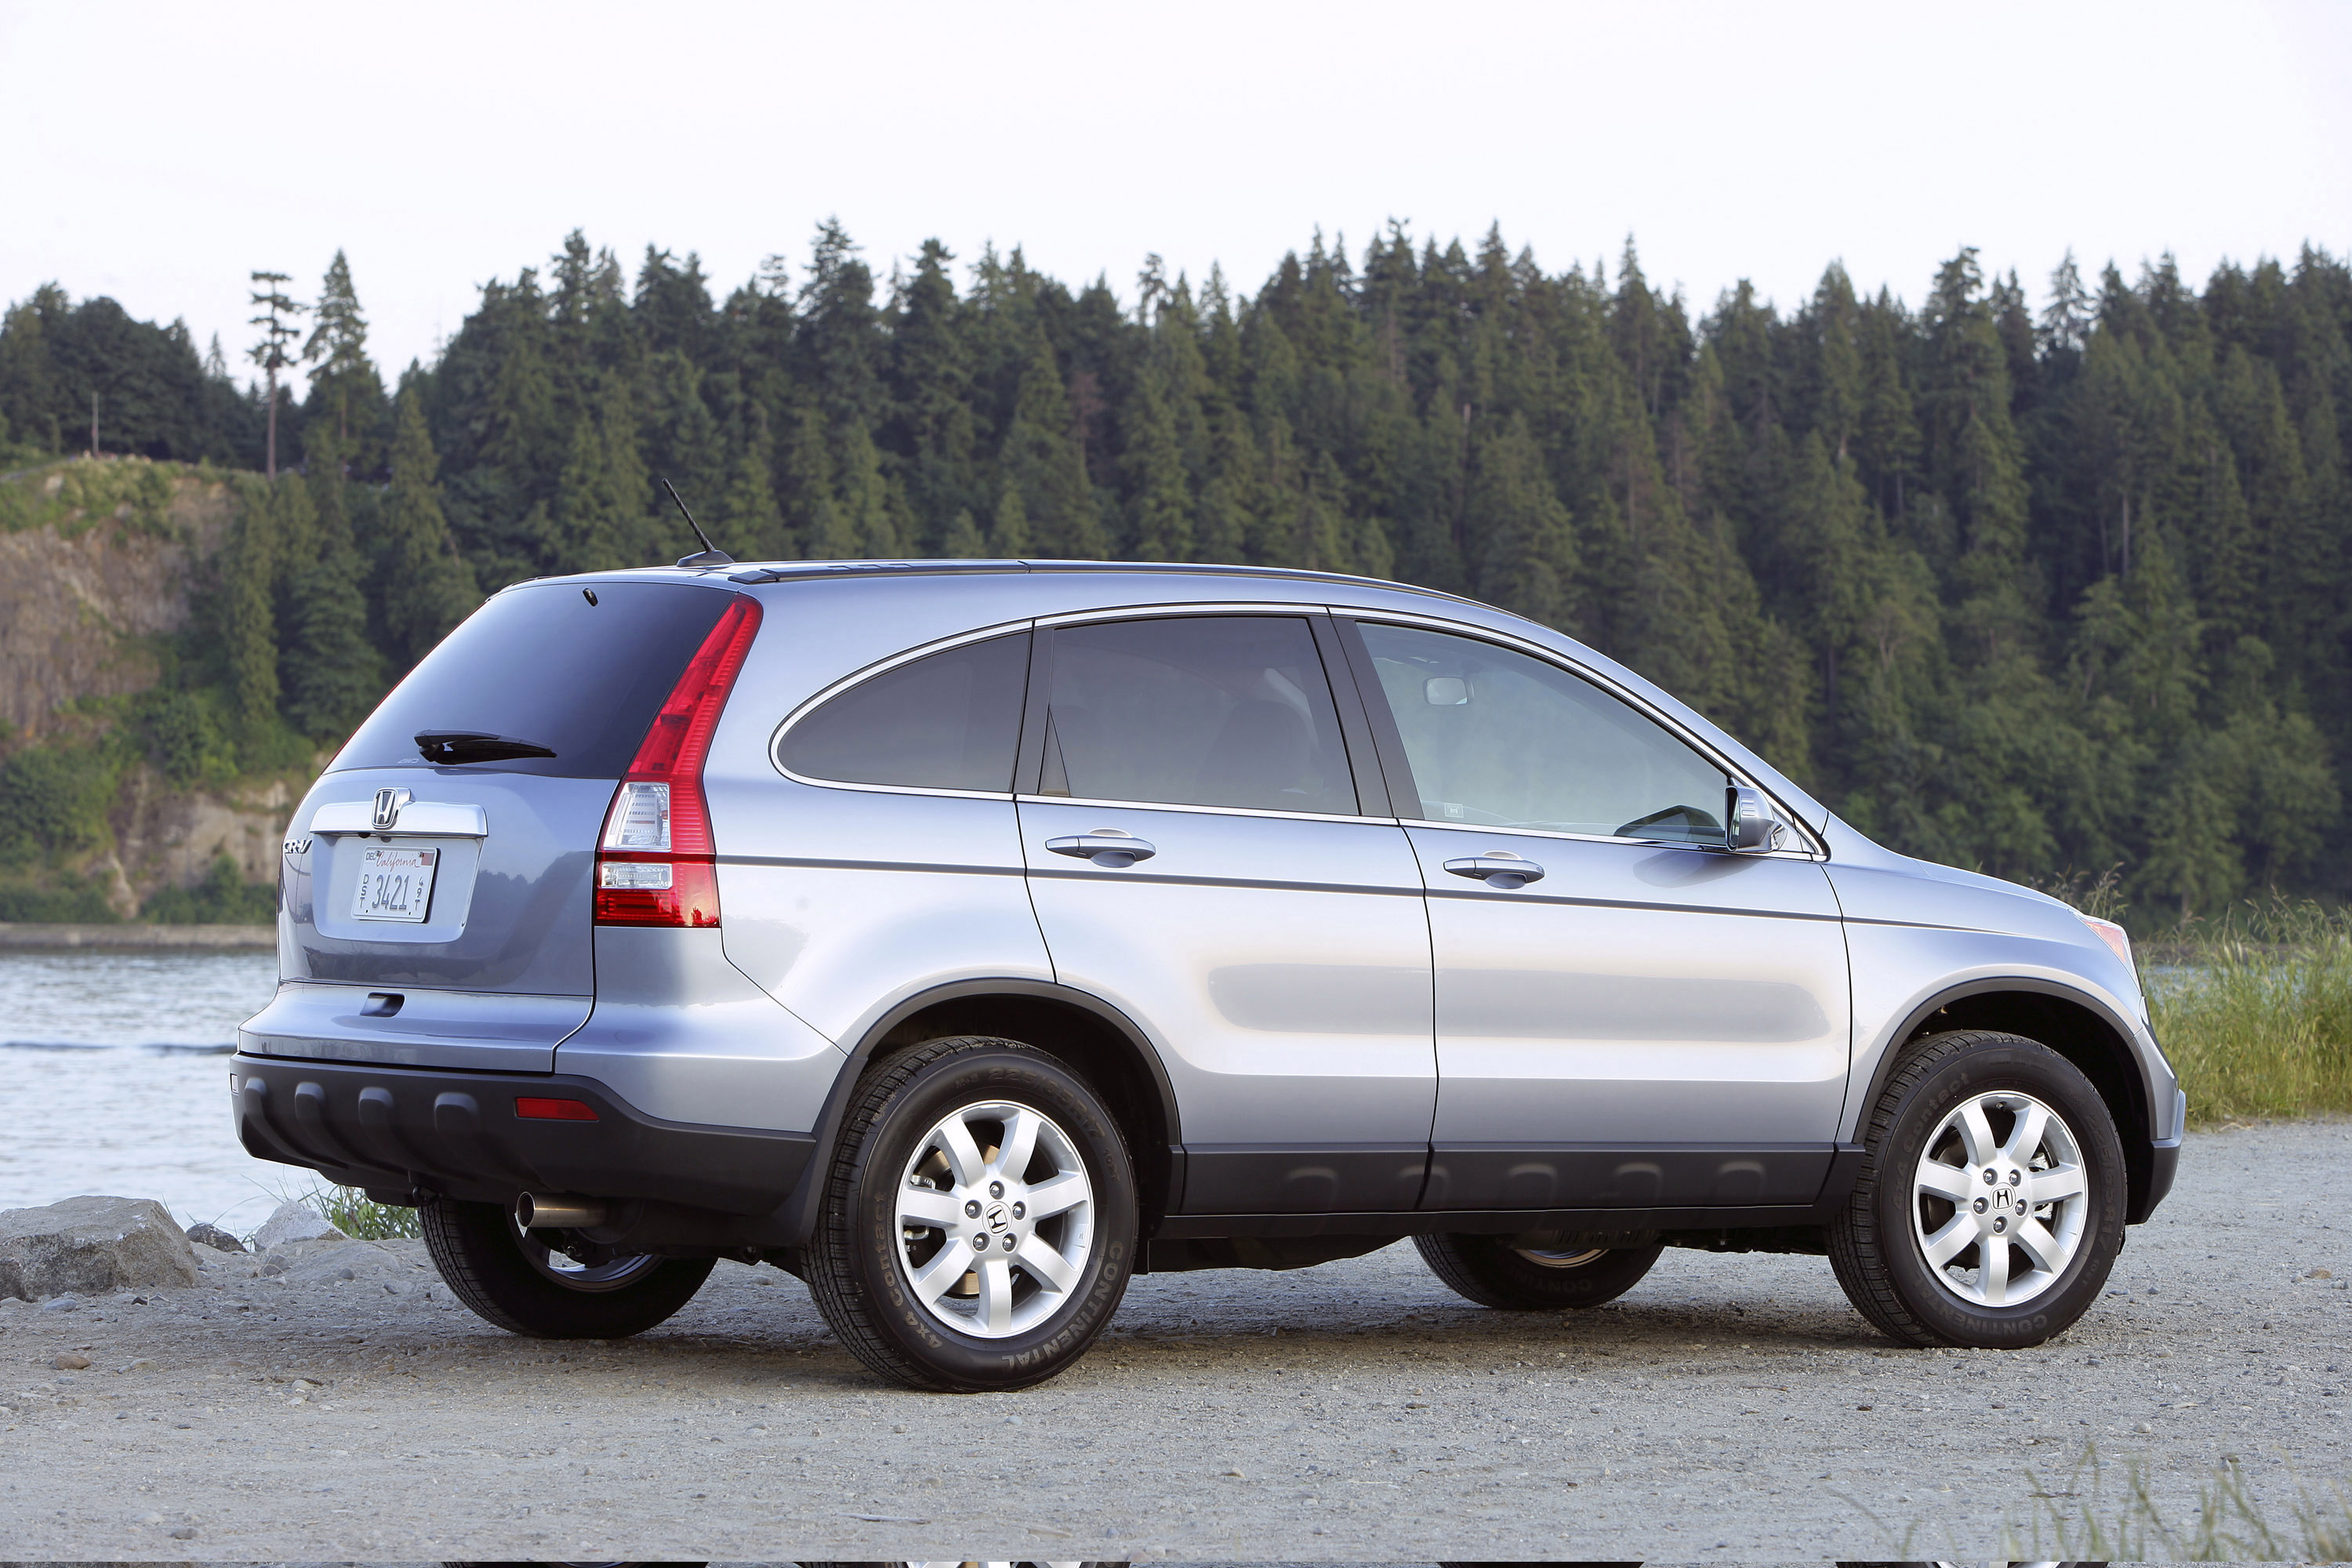 Tpms Sensor Honda >> 2009 Honda CR-V Delivers Refined and Stylish Approach to ...